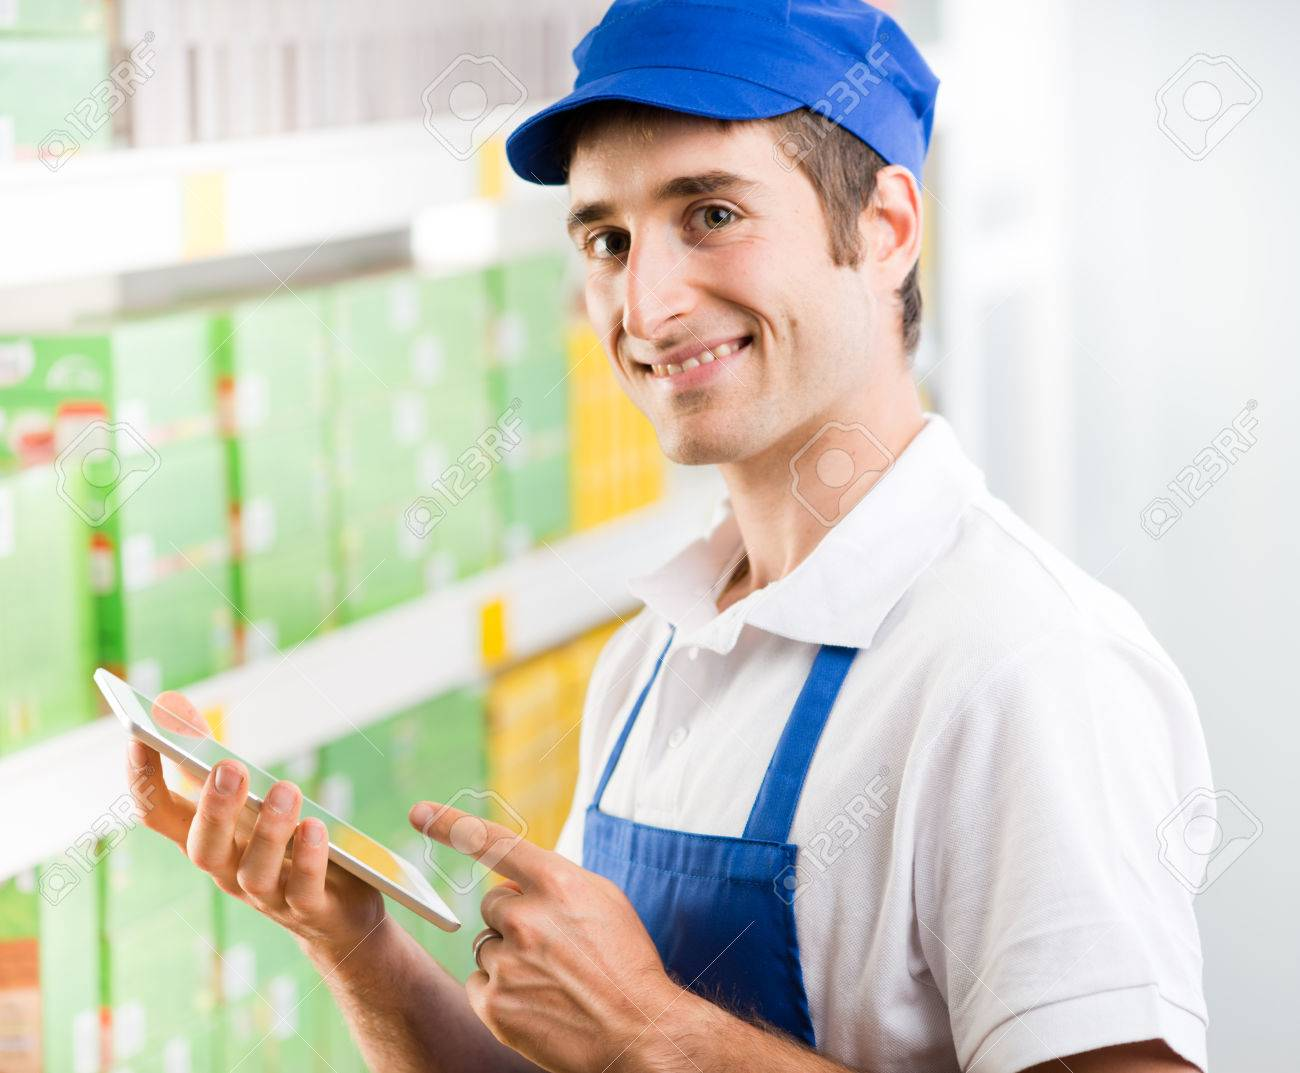 s clerk stock photos pictures royalty s clerk s clerk young s clerk holding a digital tablet and working at supermarket